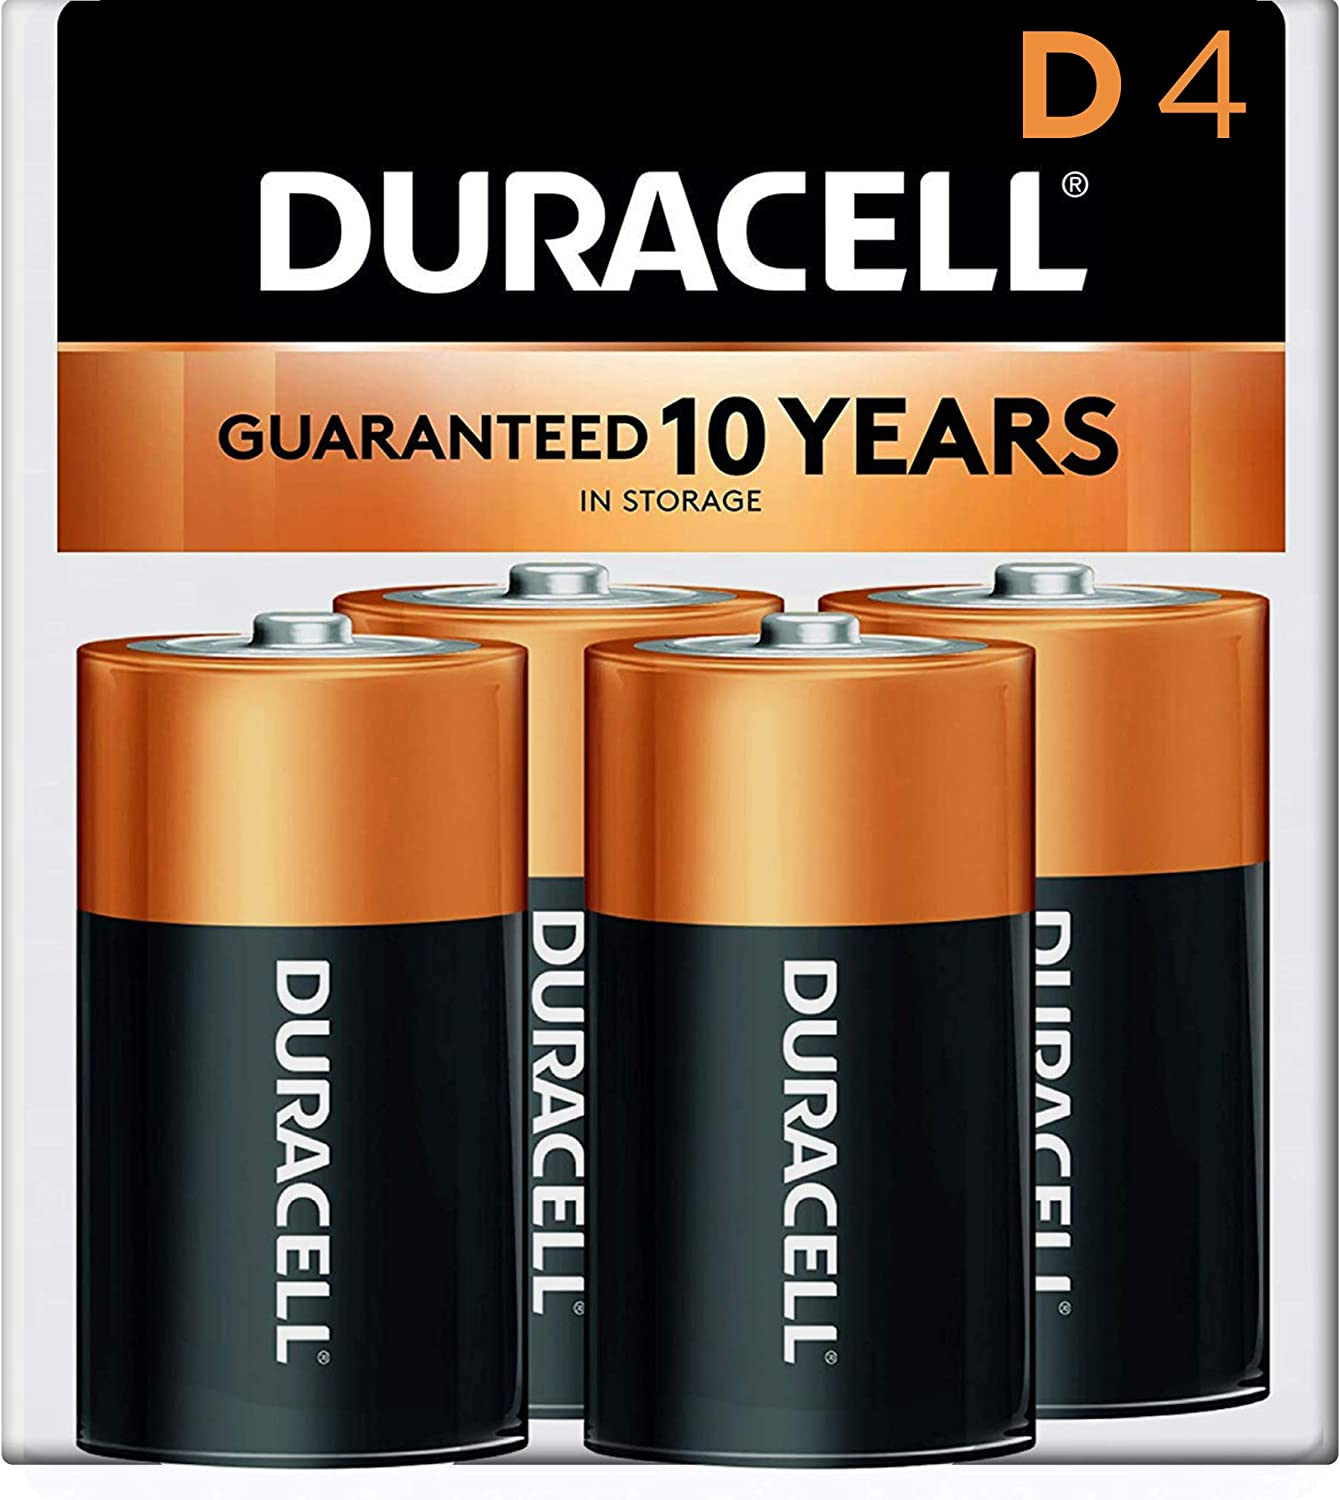 Amazon Com Duracell Coppertop D Alkaline Batteries With Recloseable Package Long Lasting All Purpose D Battery For Household And Business 4 Count Health Household